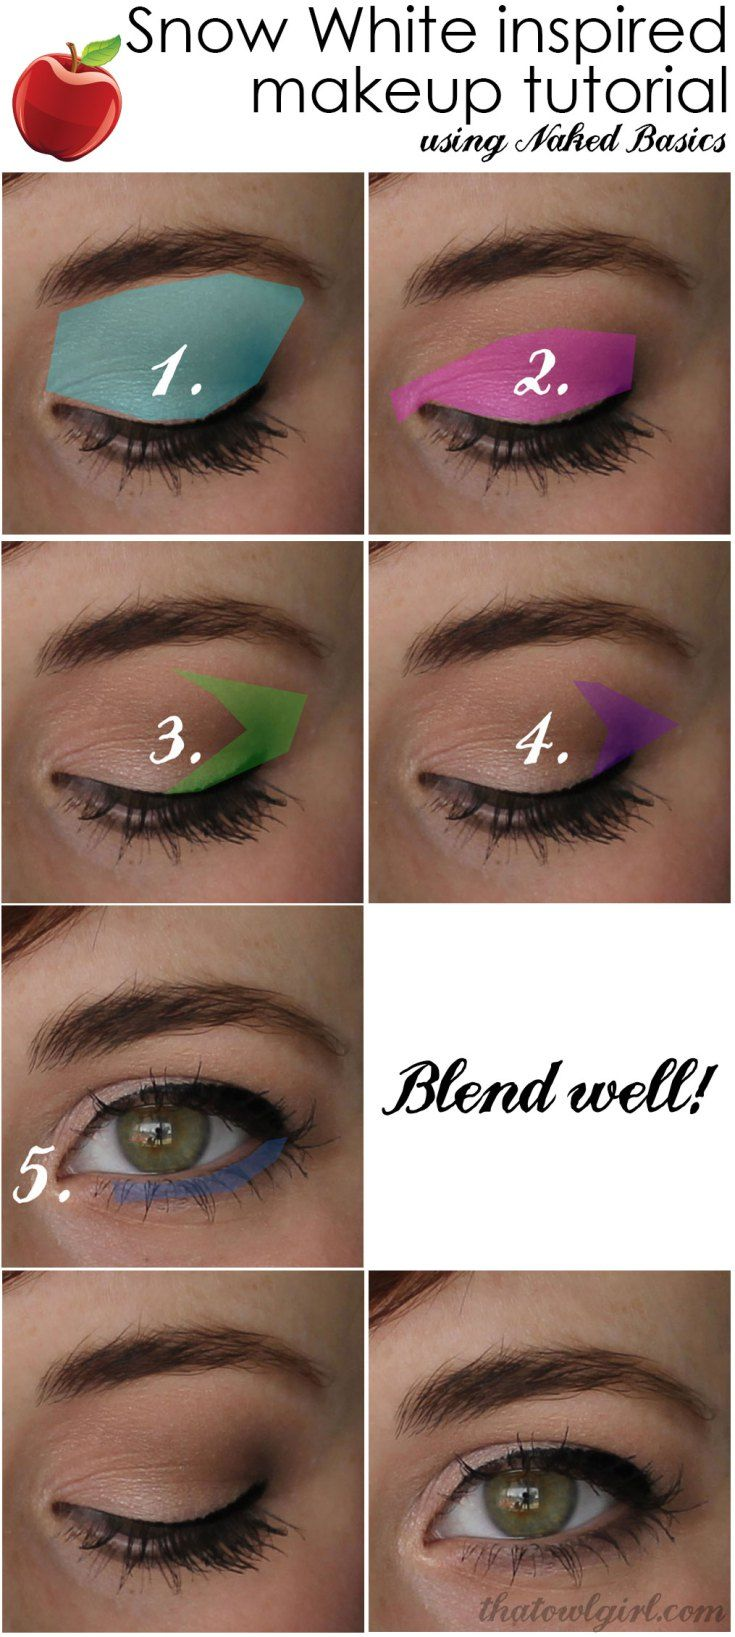 Naked Basics makeup tutorial. Mary Margaret from Once Upon a Time